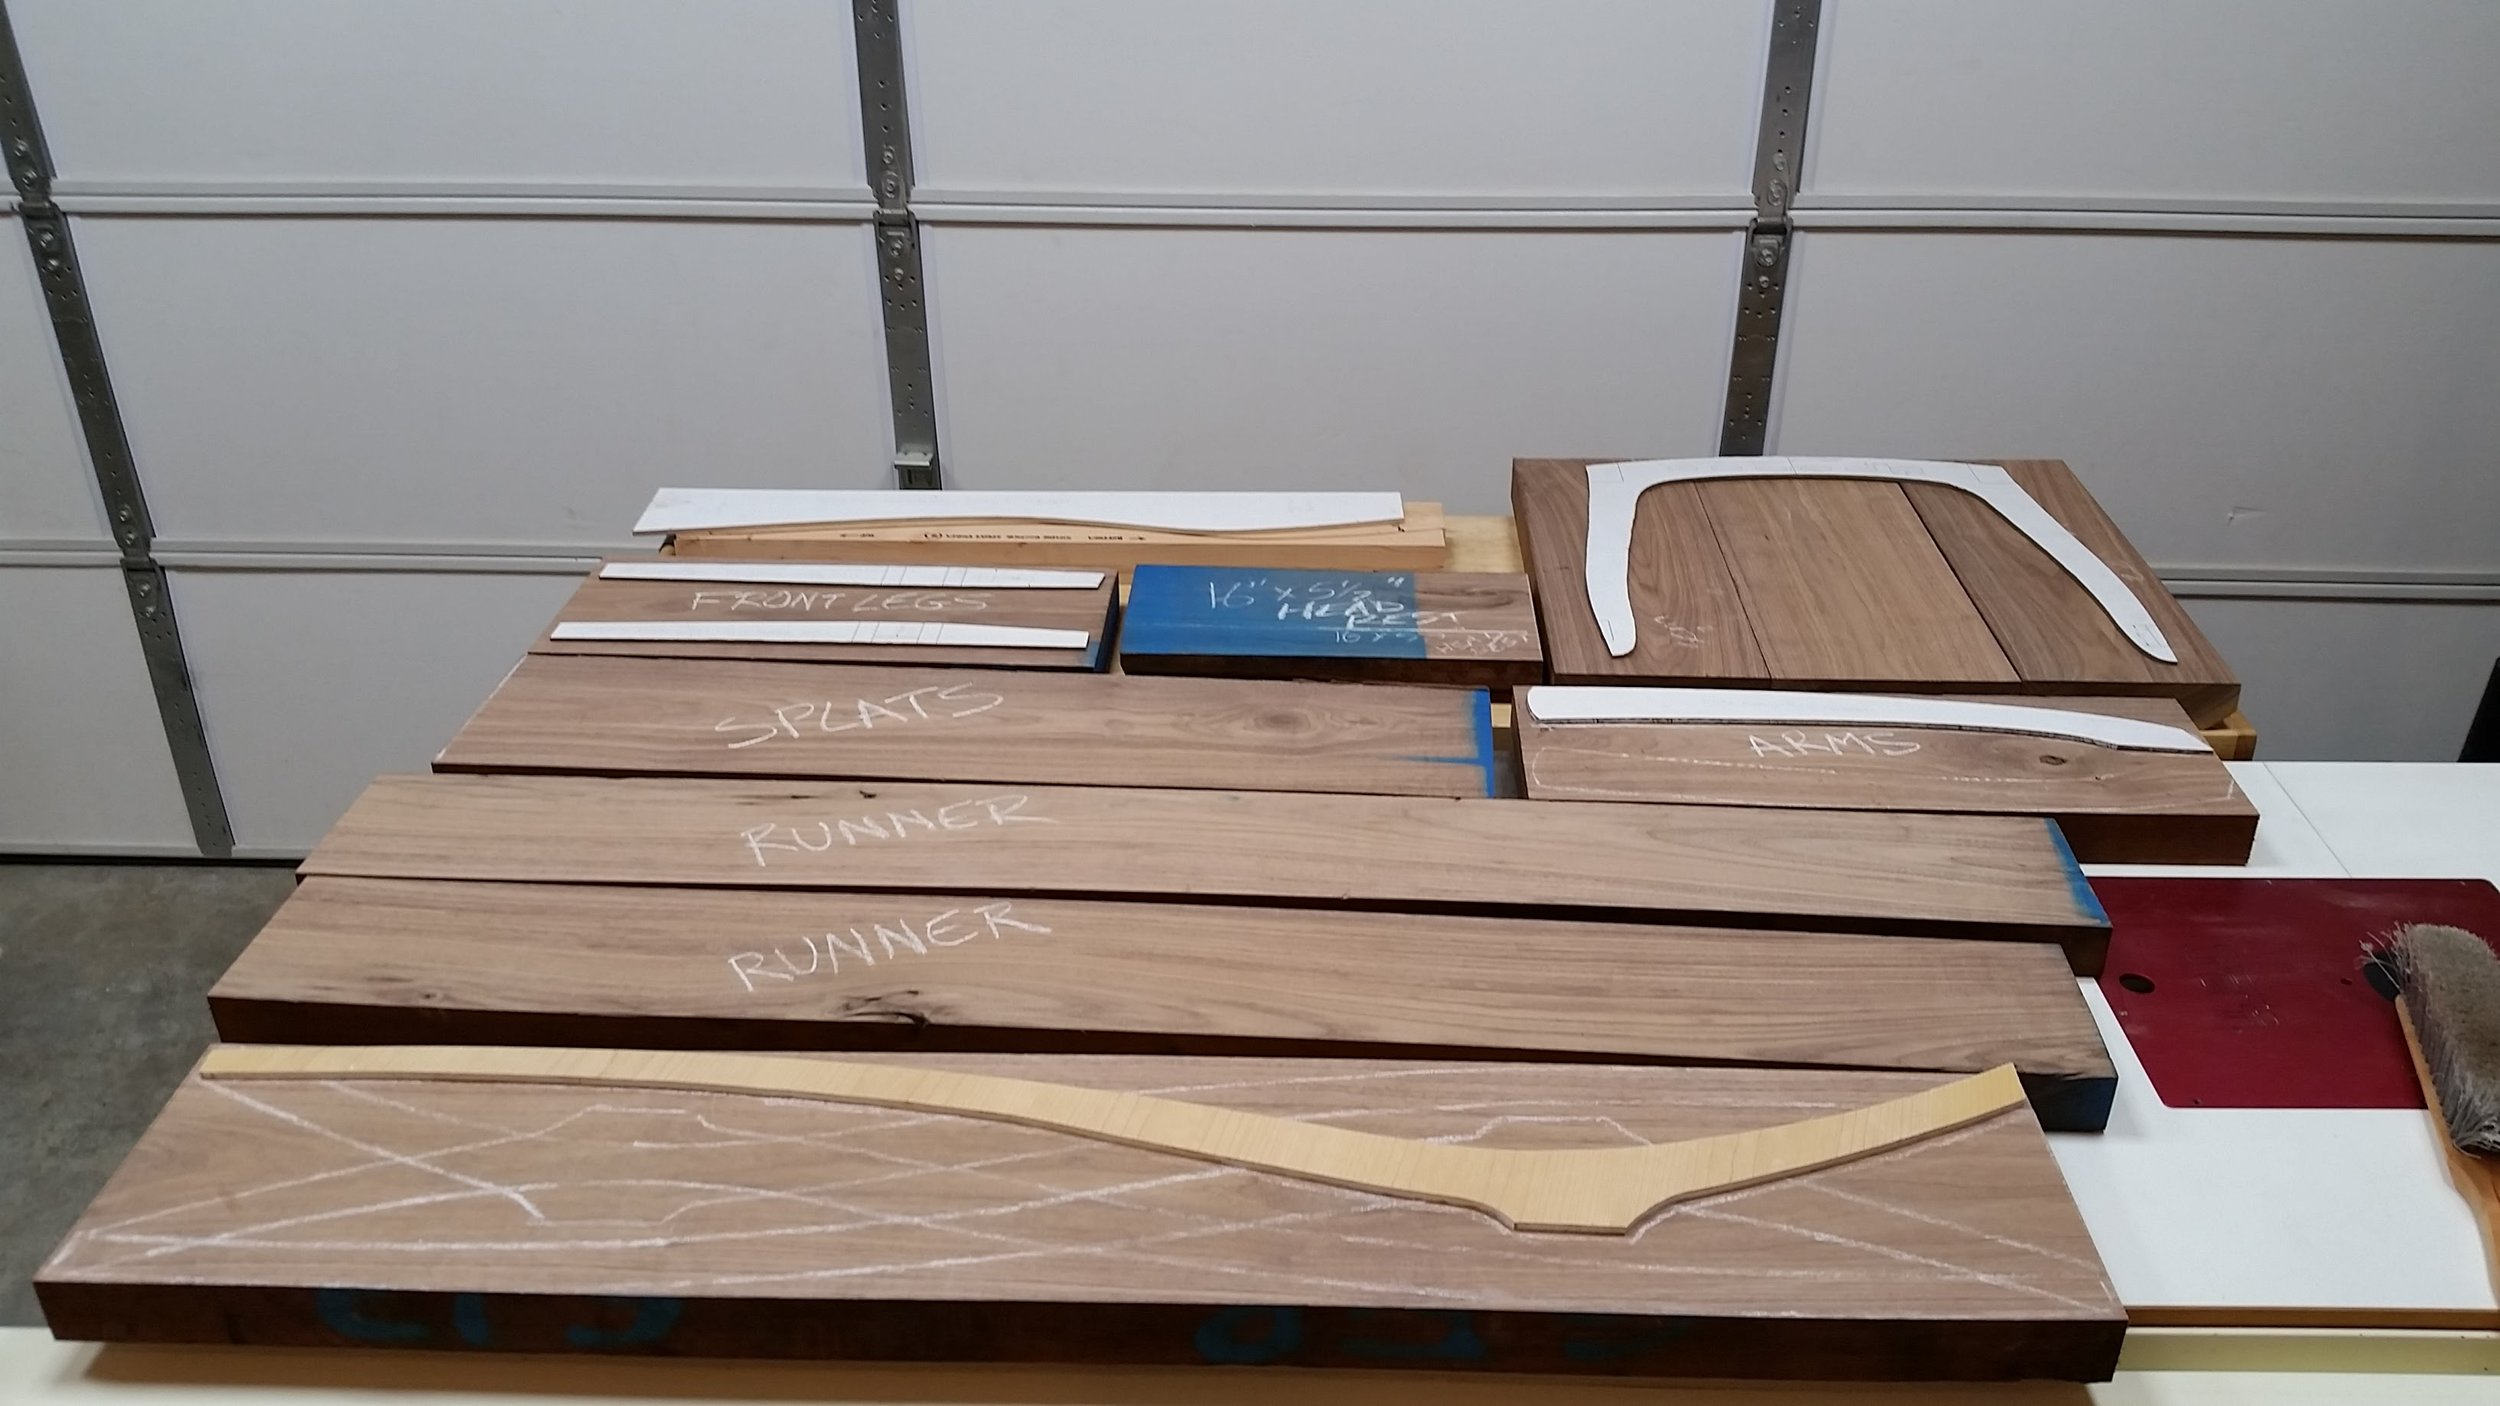 Parts all cut to rough length.